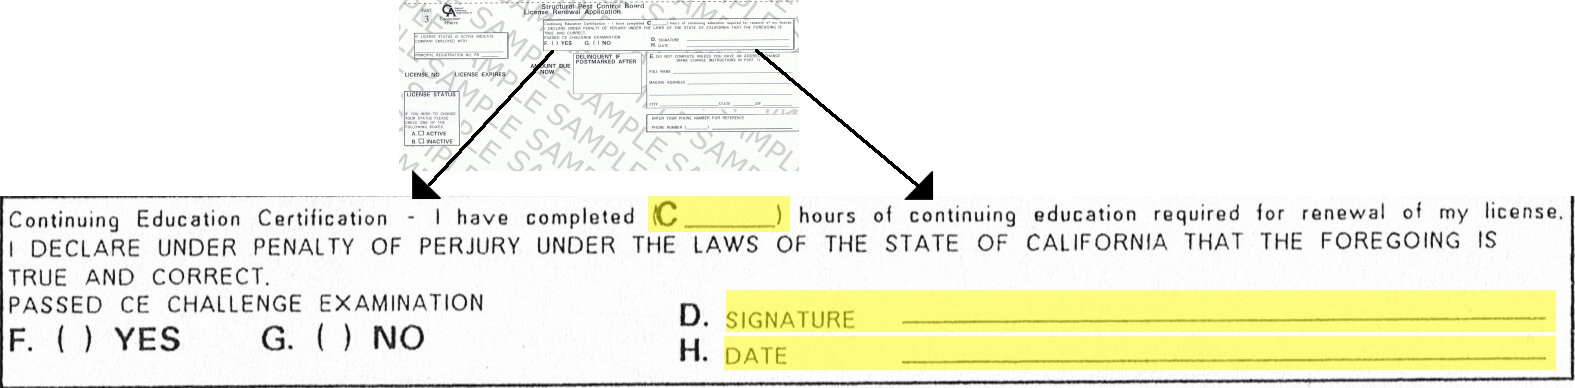 Image of the Renewal Form